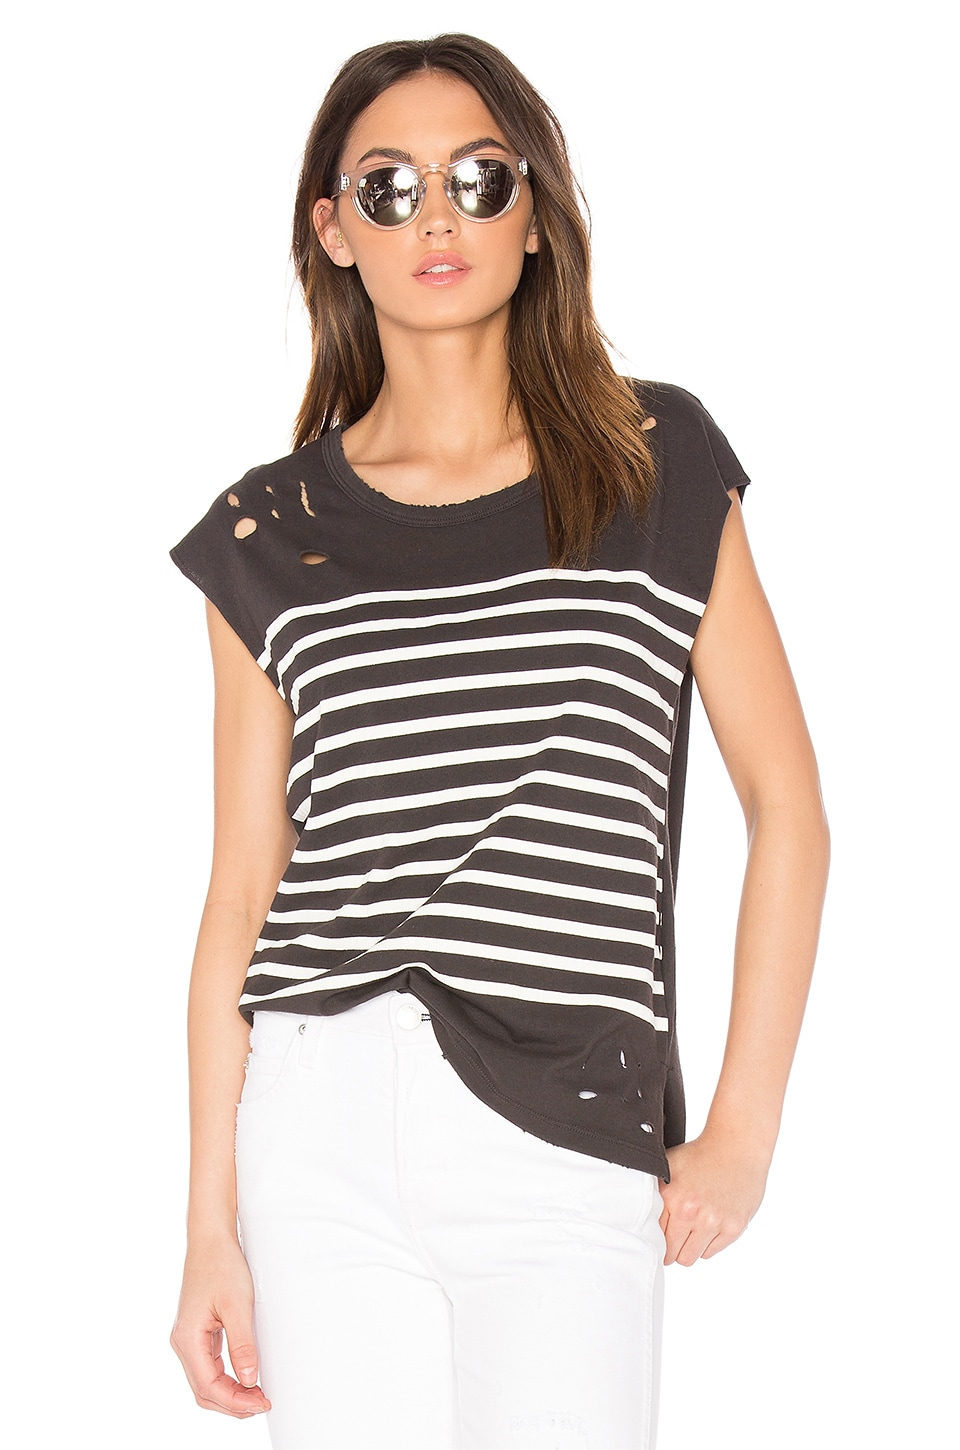 Distressed Stripe Tee by SUNDRY